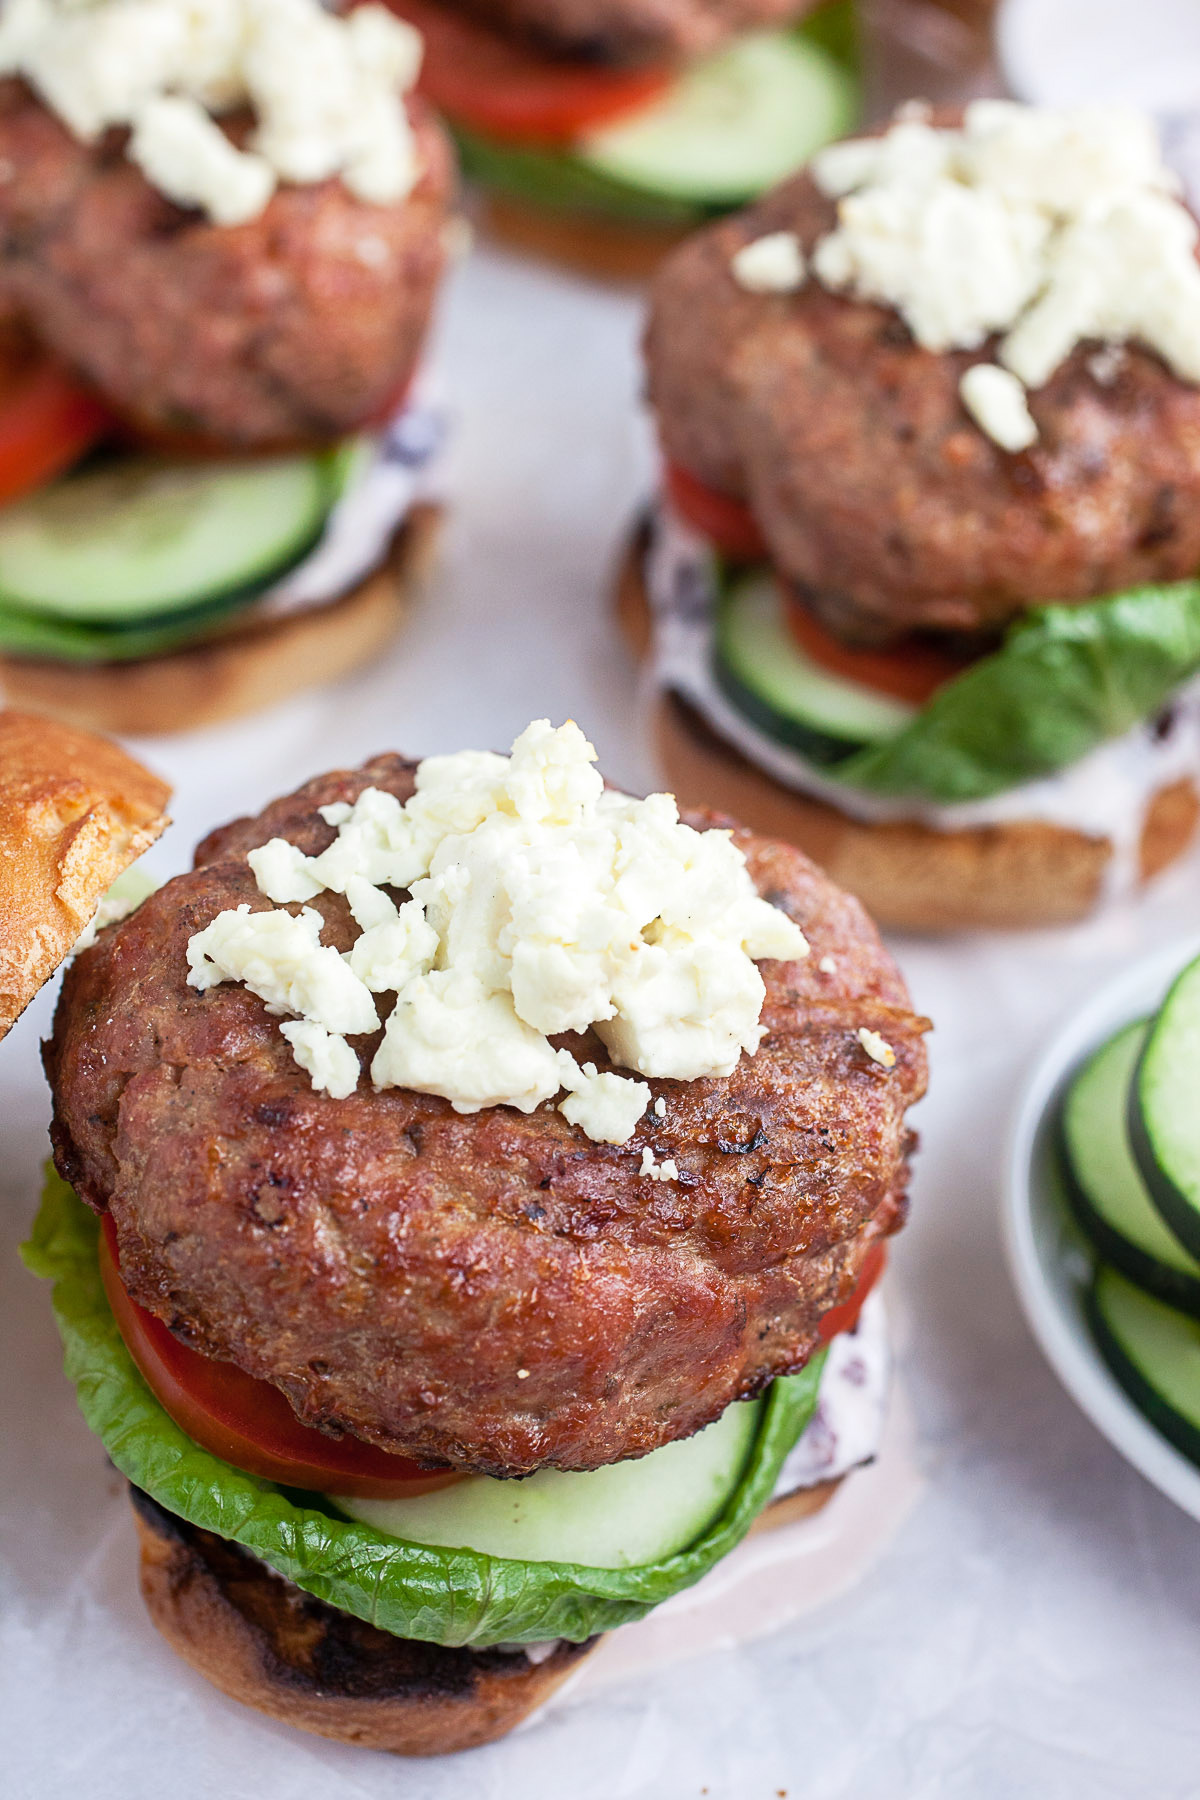 Grilled Greek turkey burger on a bun bottom with lettuce, cucumber and tomato. Crumbled feta is on top of the patty.